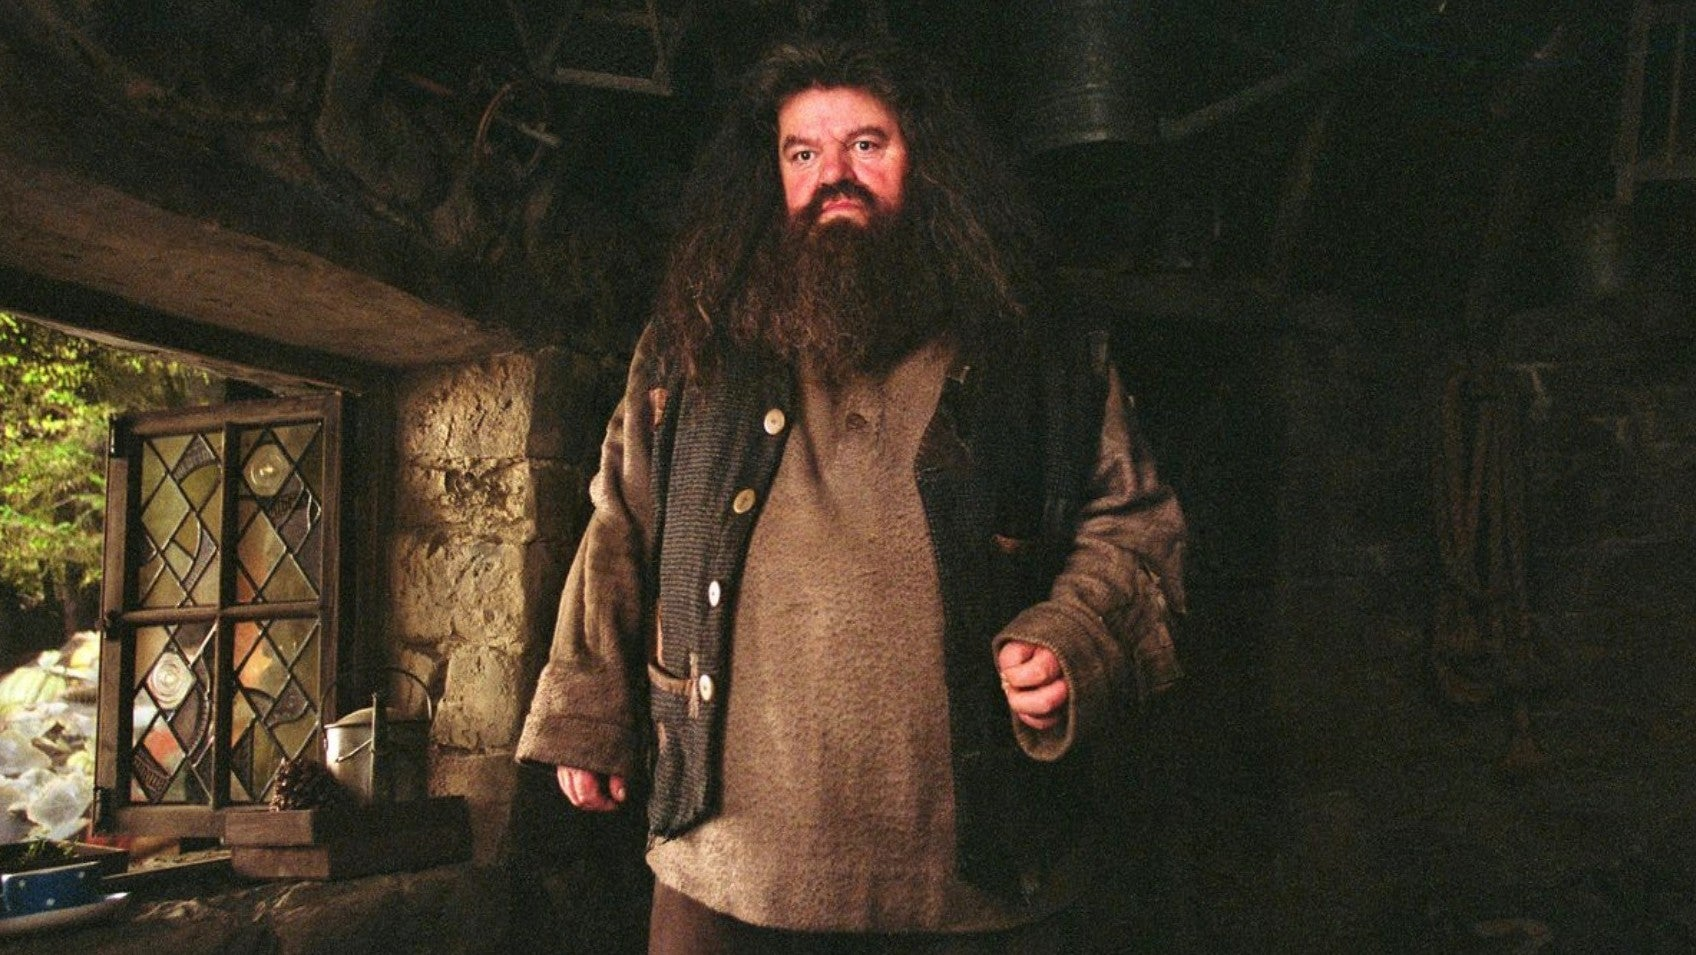 The New Harry Potter Ride Will Feature One Of Hagrid's Unique Creatures That Wasn't In The Movies